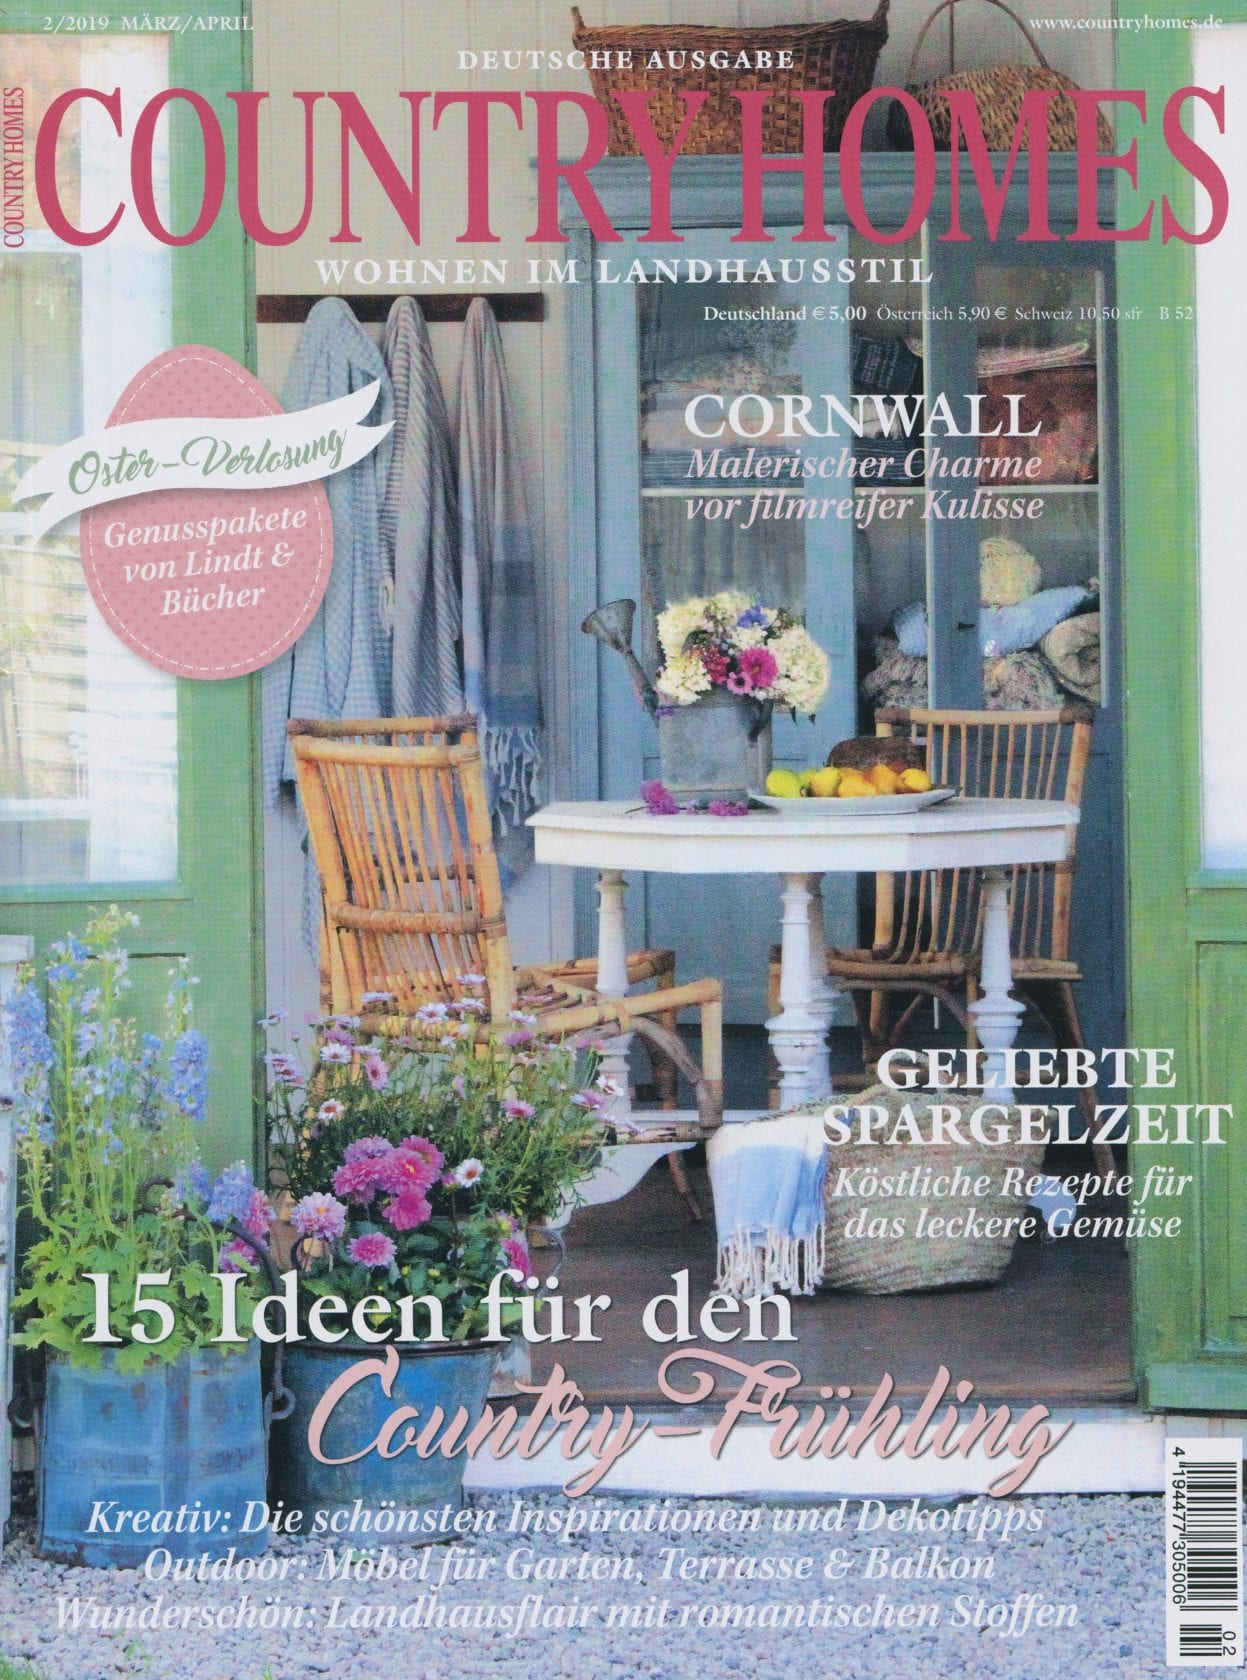 COUNTRYHOMES – 2/2019 März/April